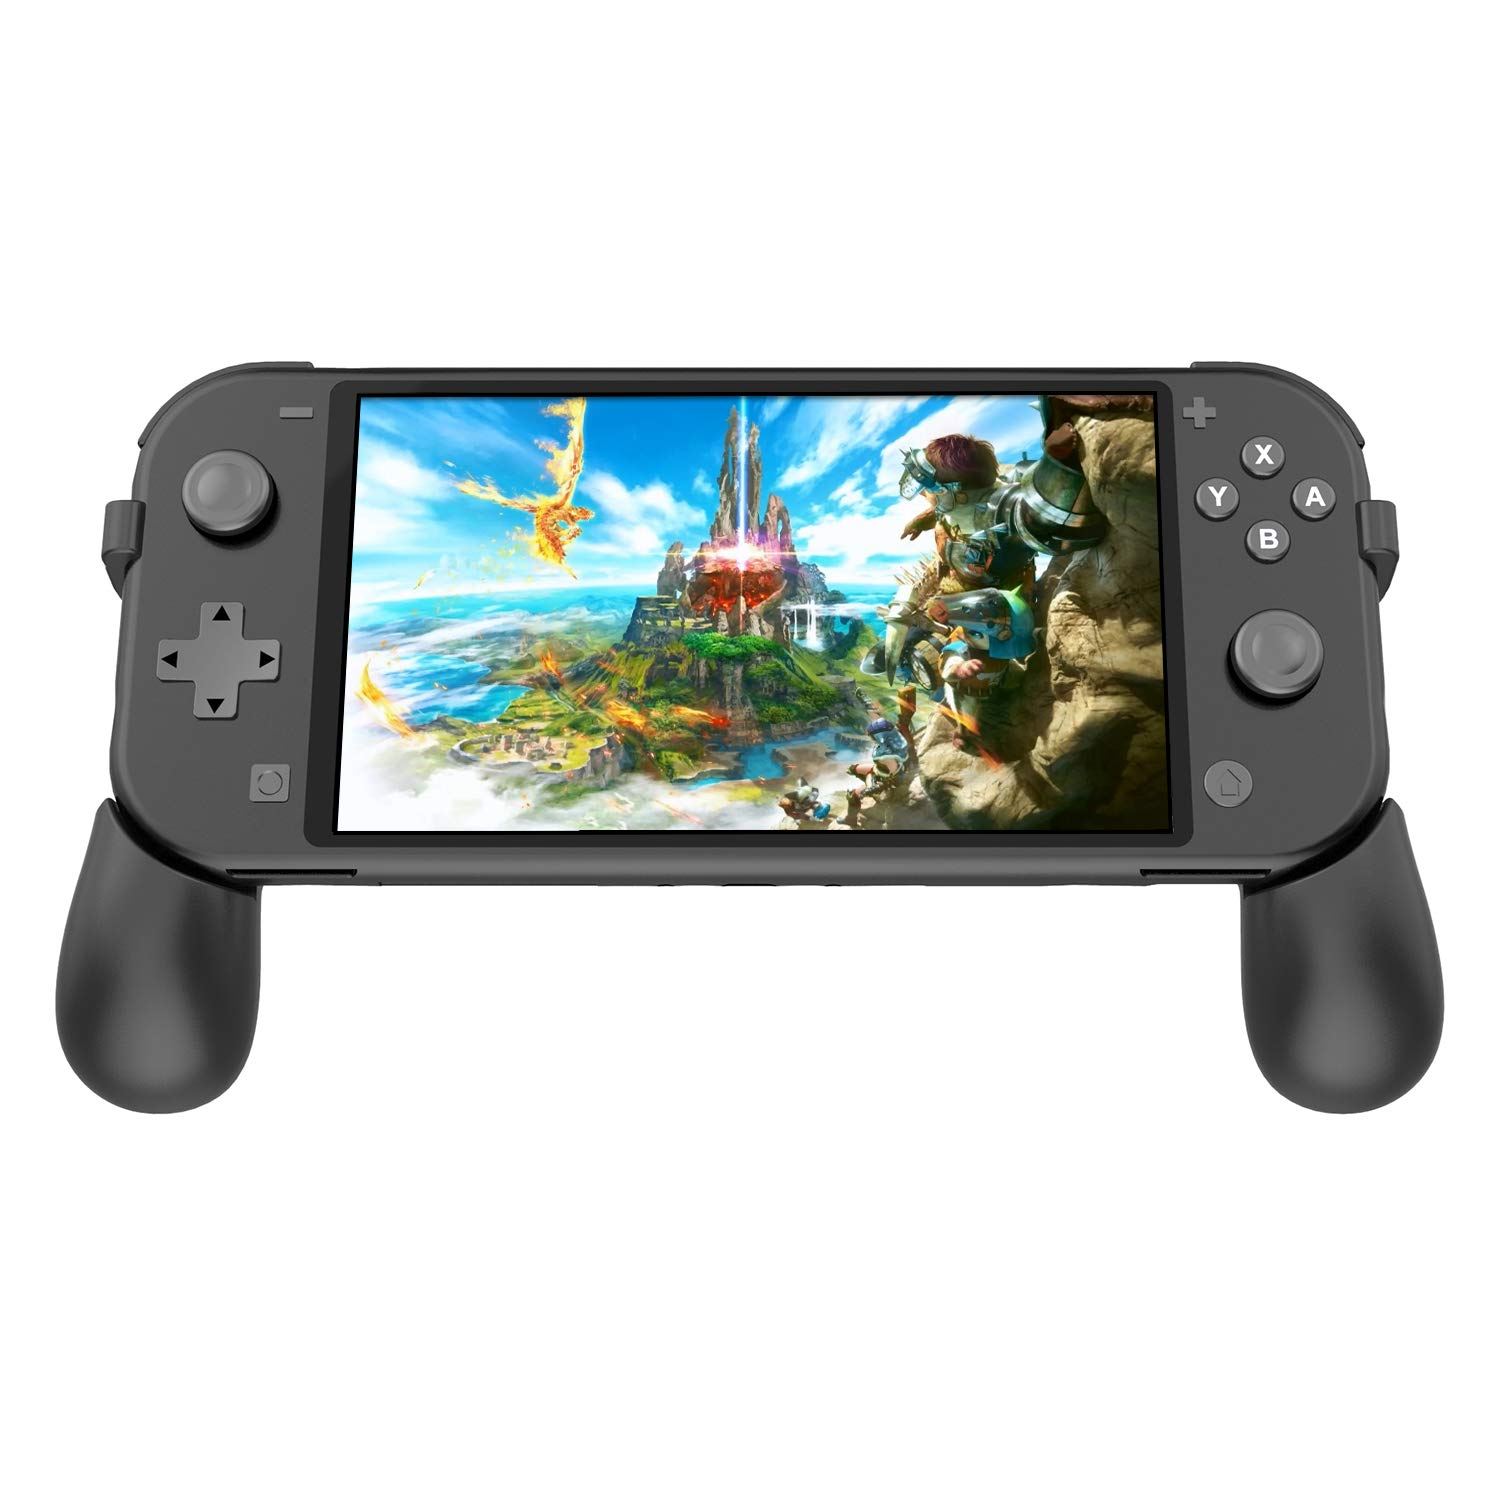 FYOUNG Hand Grips for Nintendo Switch Lite 2019 with 2 Game Slots, Foldable Grip Stand for Nintendo Switch Lite by FYOUNG